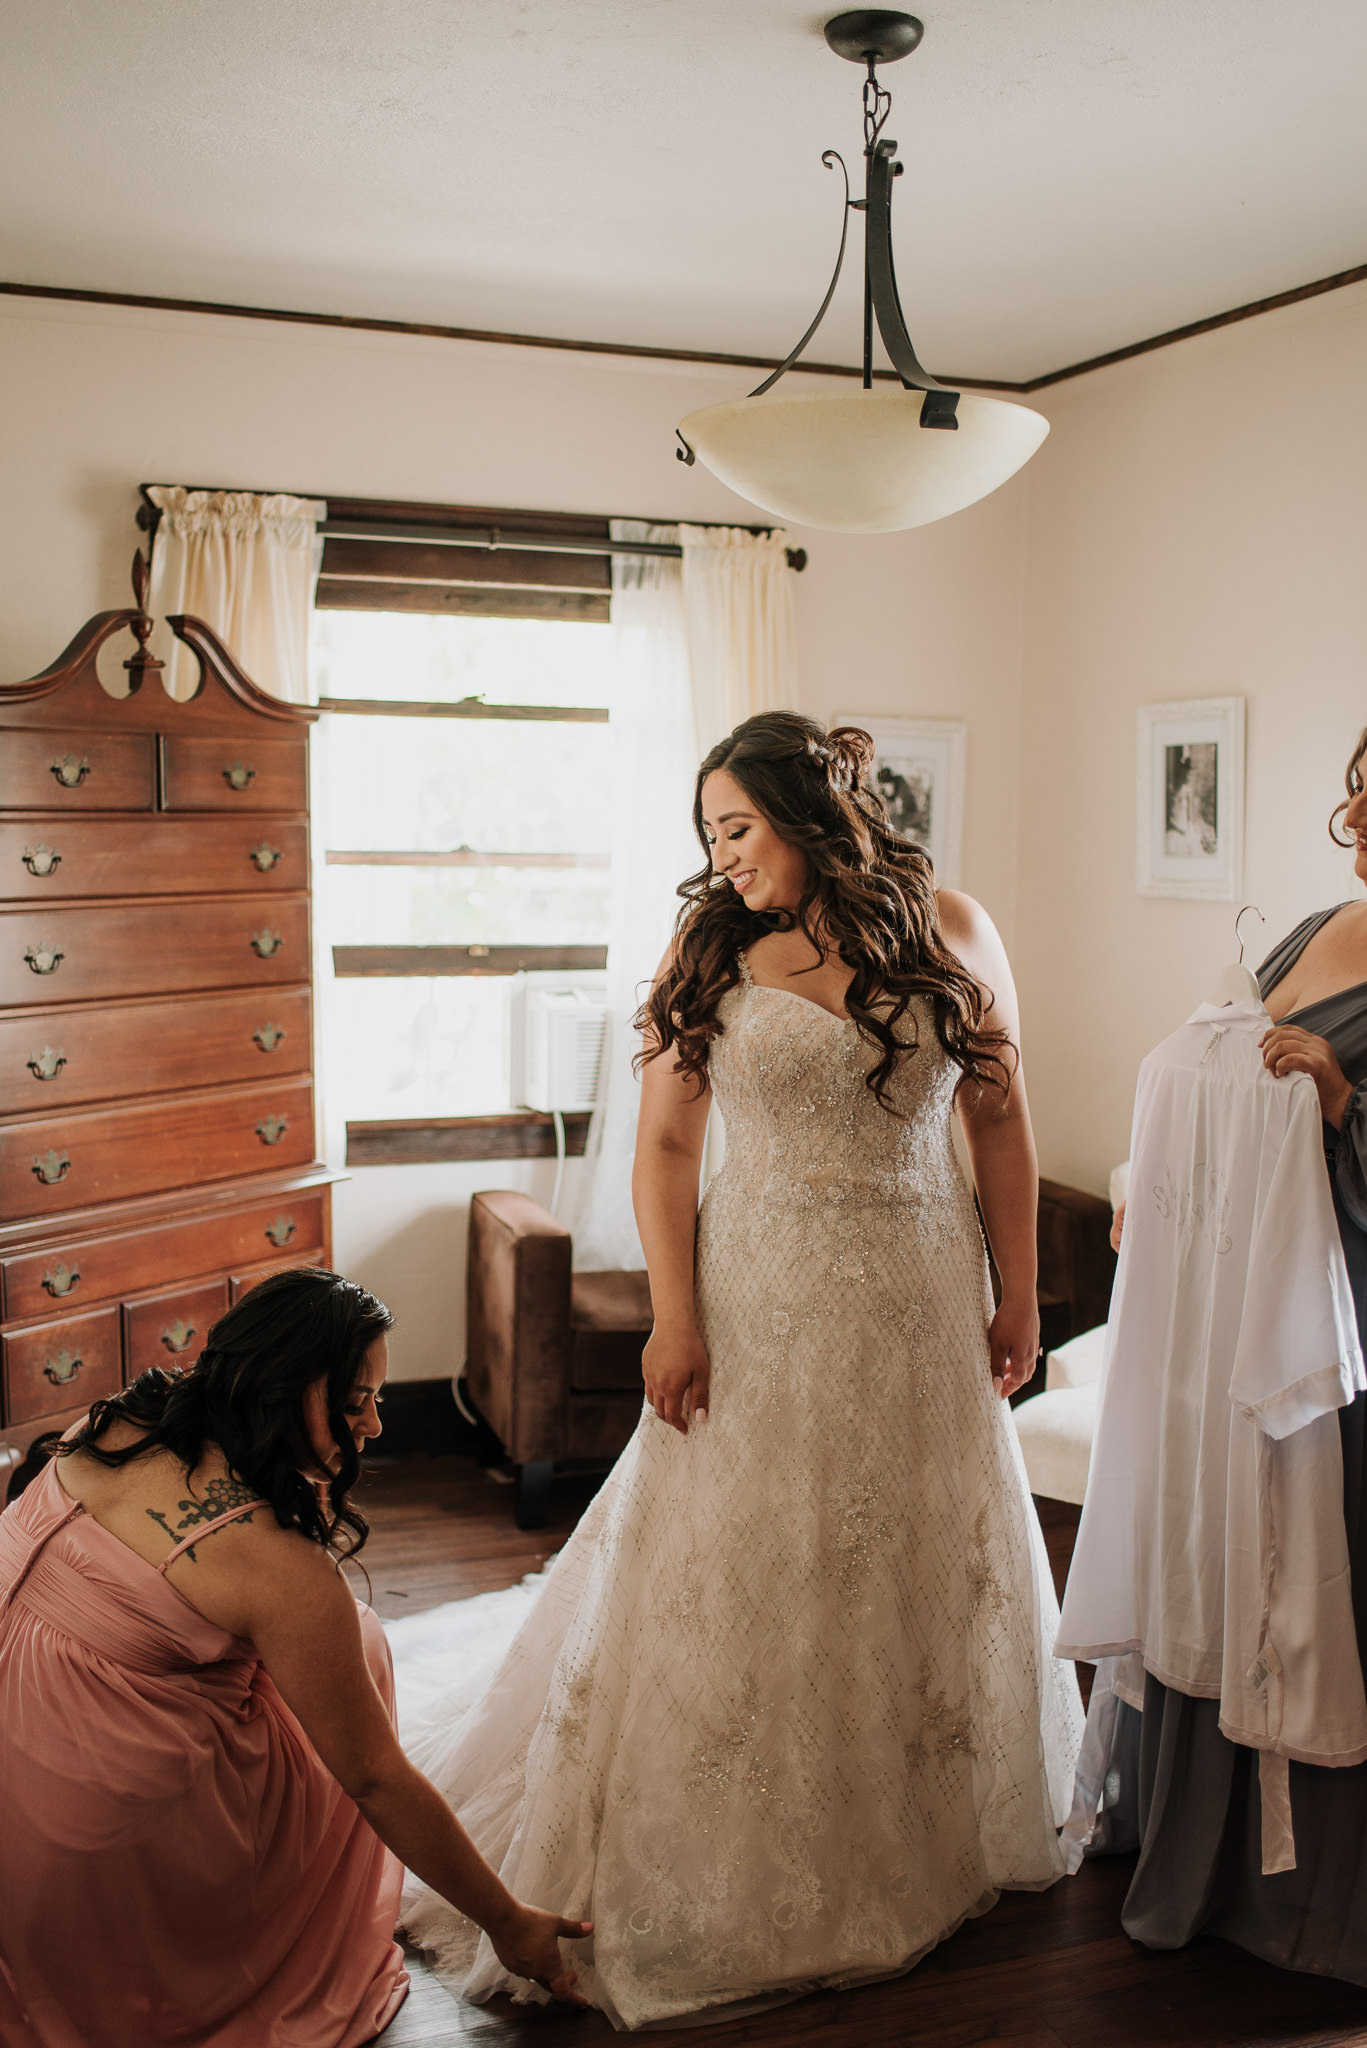 2019-04-05_Brittany_and_Nick_-_Married_-_San_Juan_Capistrano-14.jpg